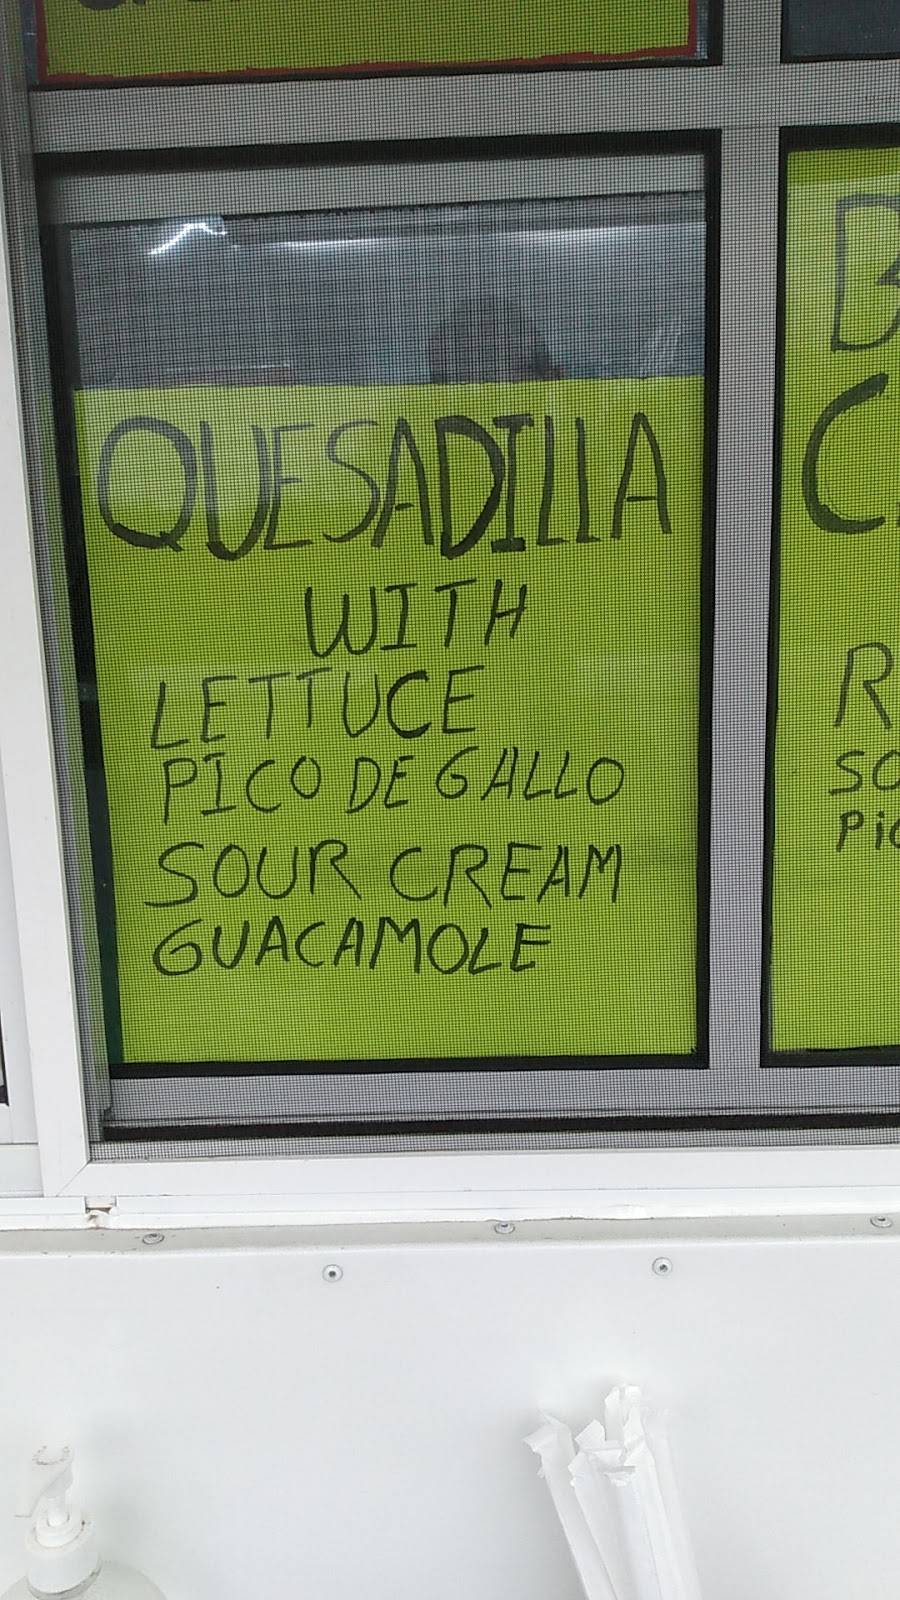 Tacos Los Compadres | restaurant | 10119 Old Union Rd, Union, KY 41091, USA | 8593604581 OR +1 859-360-4581